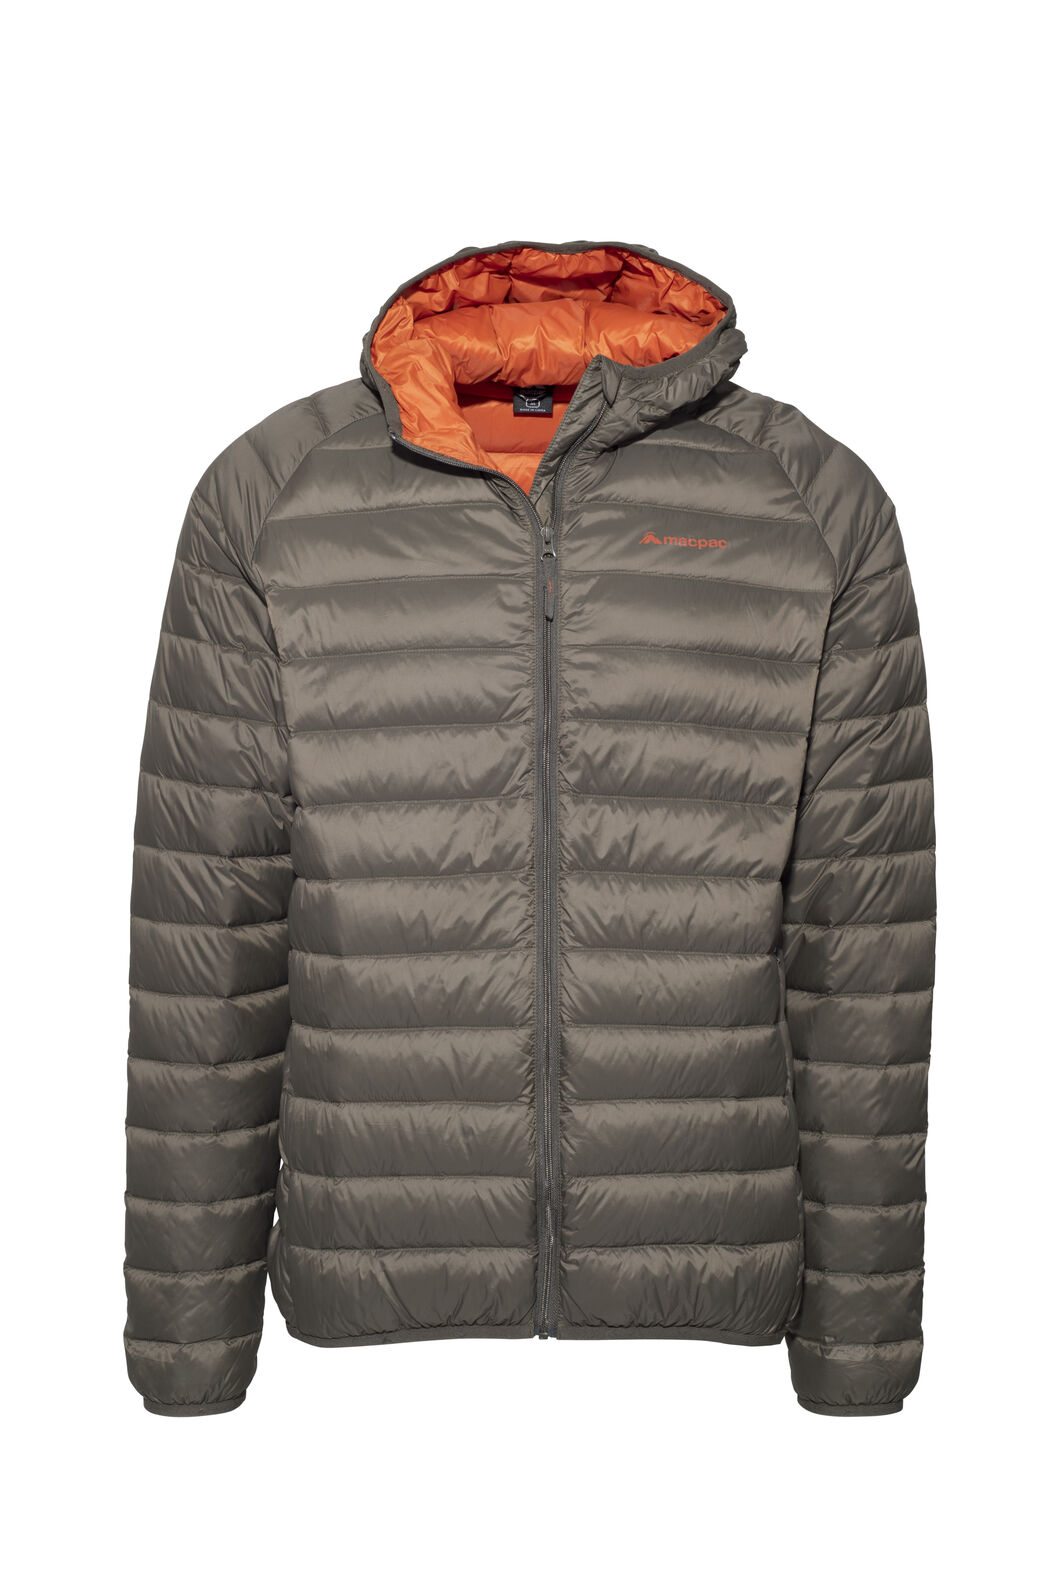 Macpac Uber Hooded Down Jacket - Men's, Black Olive/Rooibos Tea, hi-res